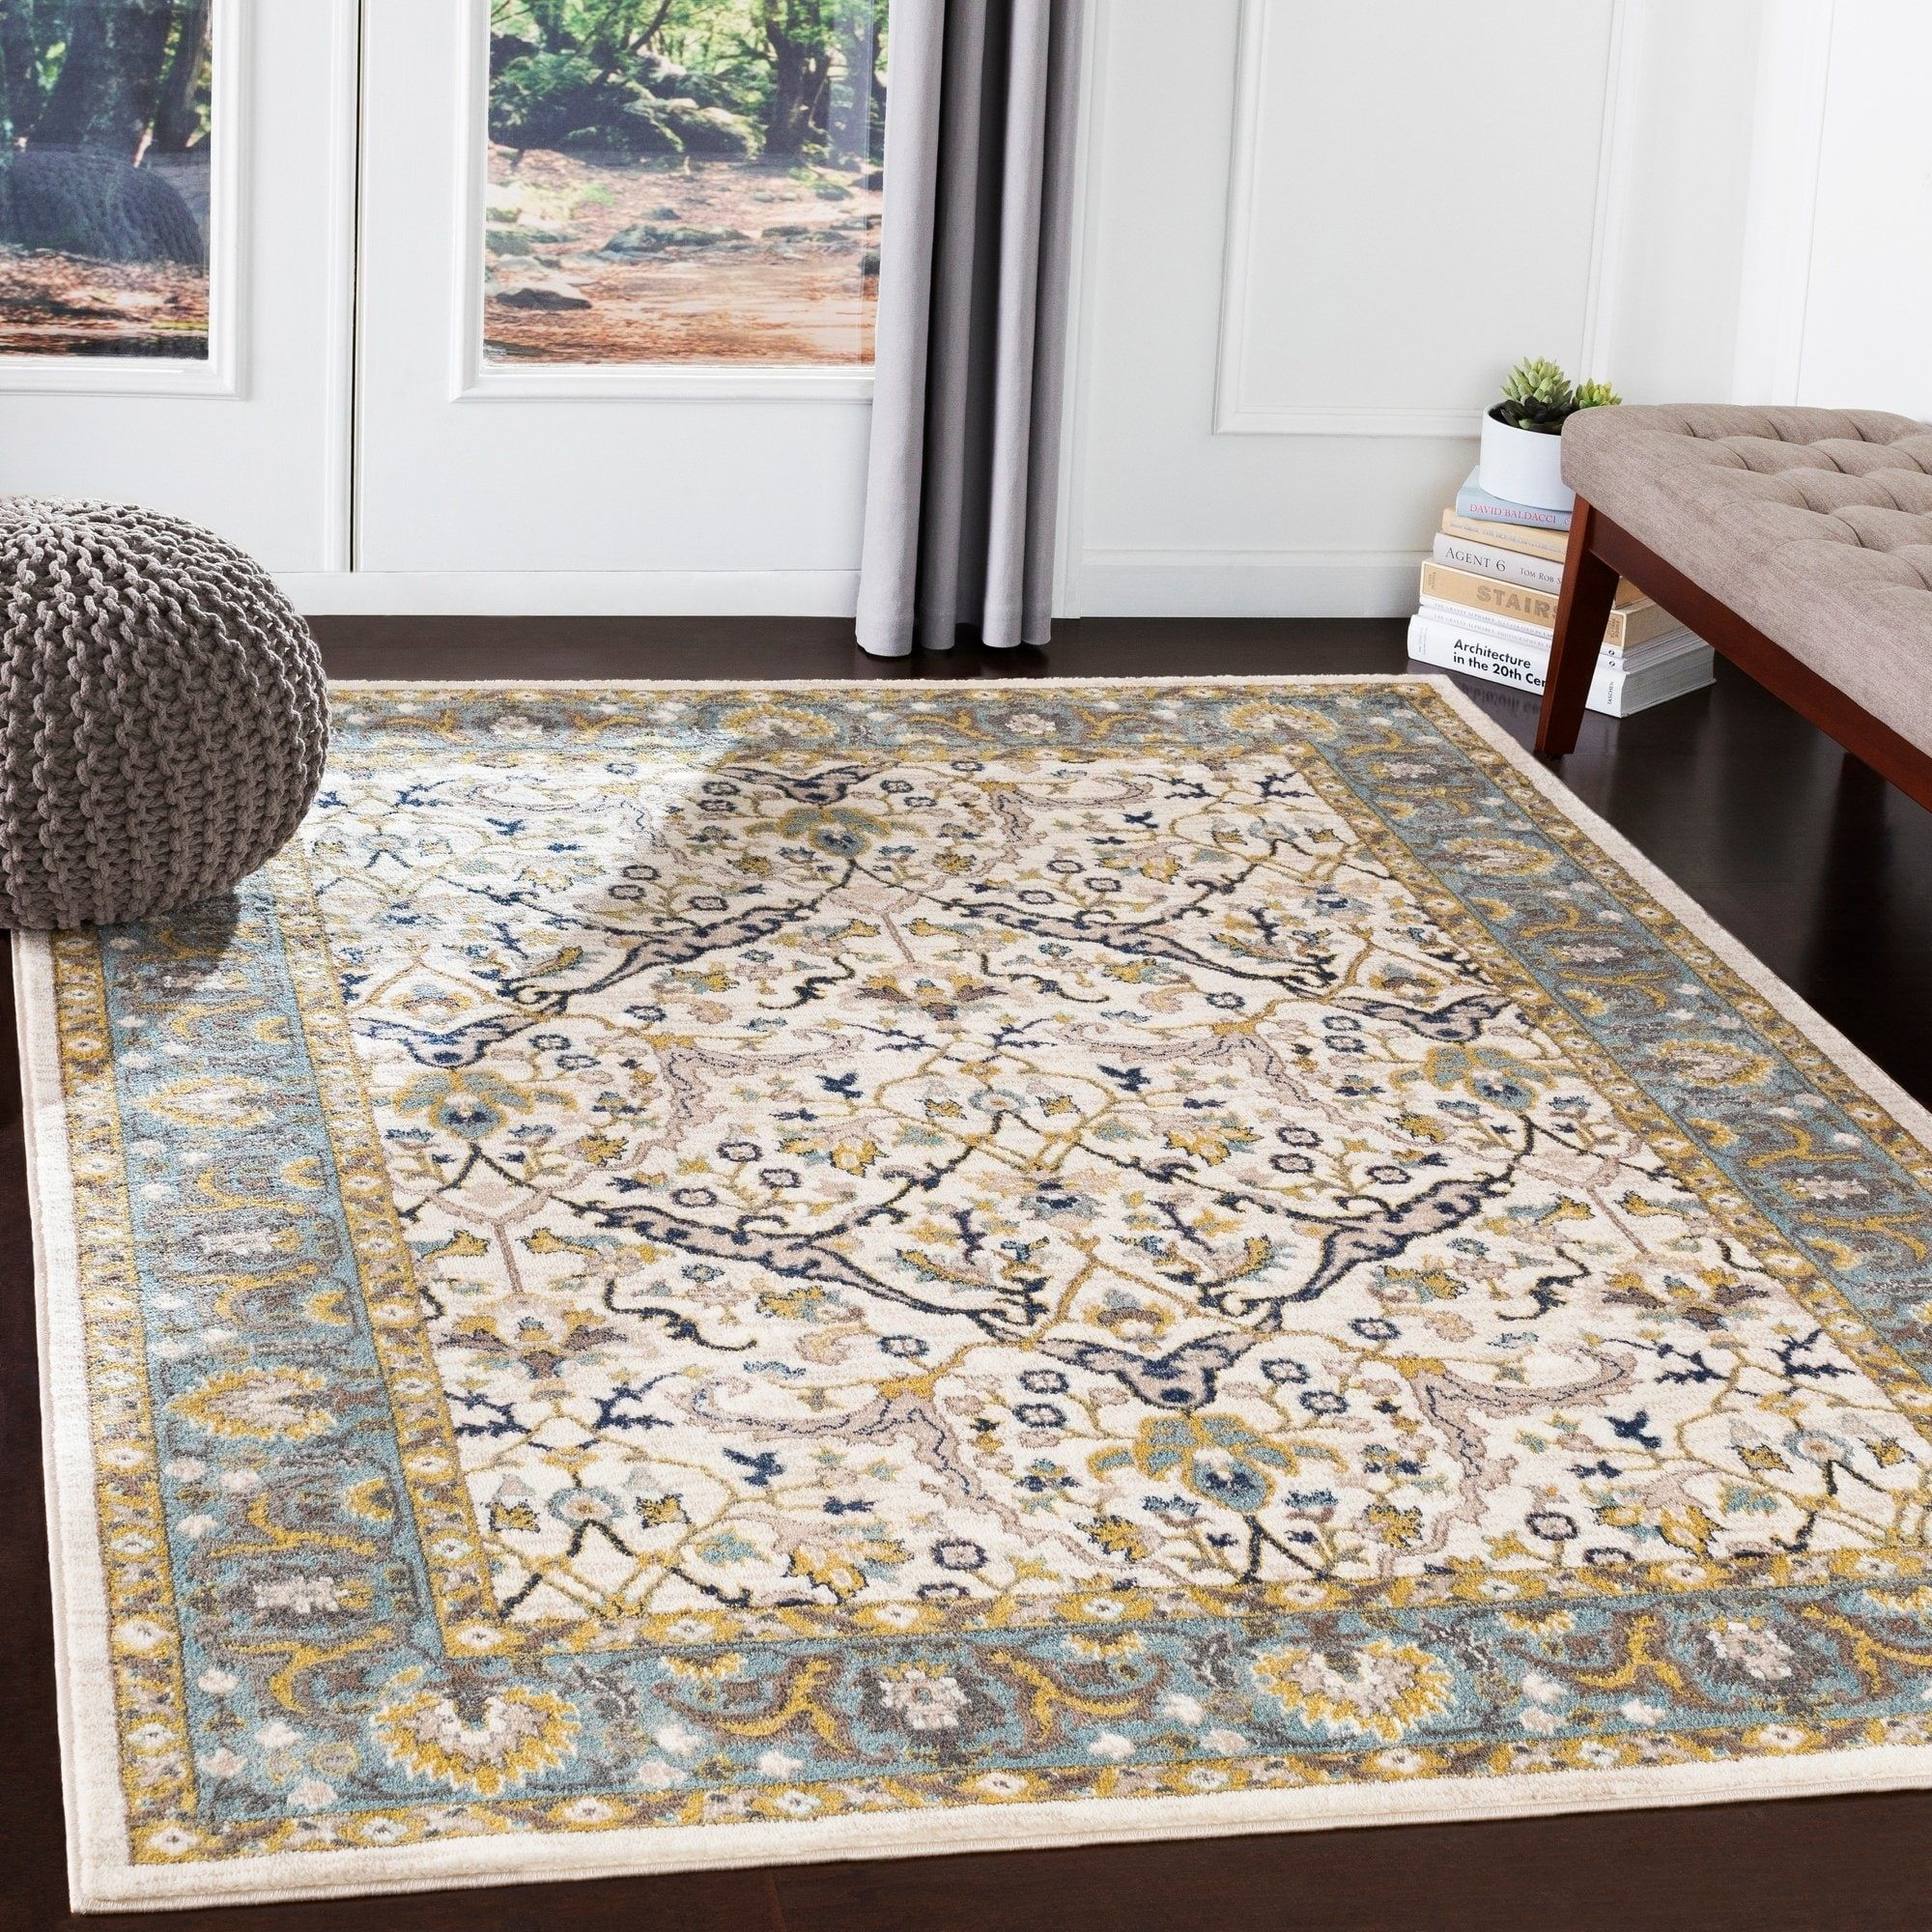 Paxton Sky Blue Traditional Area Rug 7 10 X 10 3 7 10 X 10 3 Sky Area Rugs Beige Area Rugs Blue Area Rugs